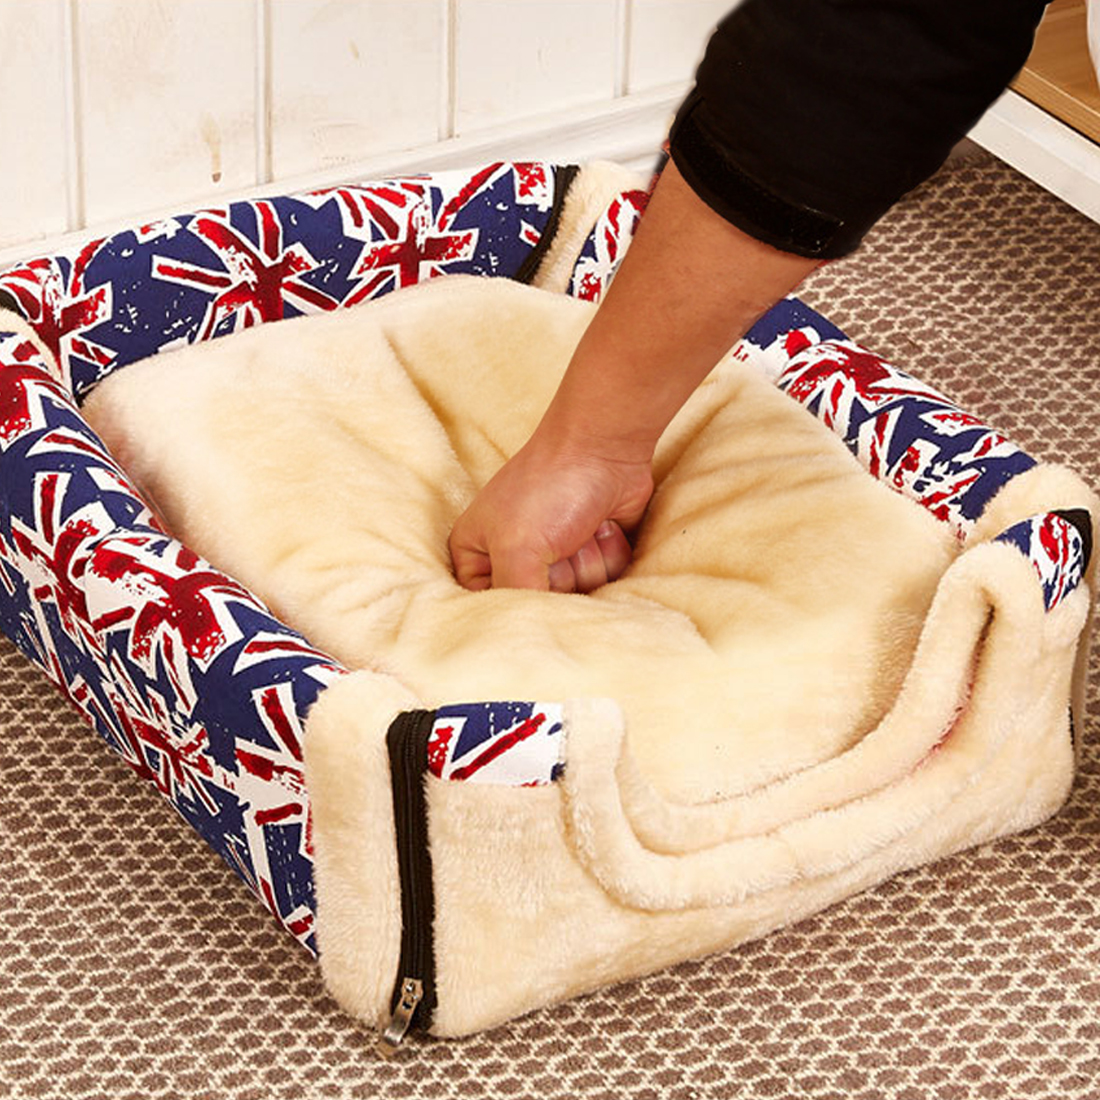 Hot Pets Cats house Multifuctional goods dog bed house For Small Medium Dogs Travel Pet Bed Bag Product Tent for animals